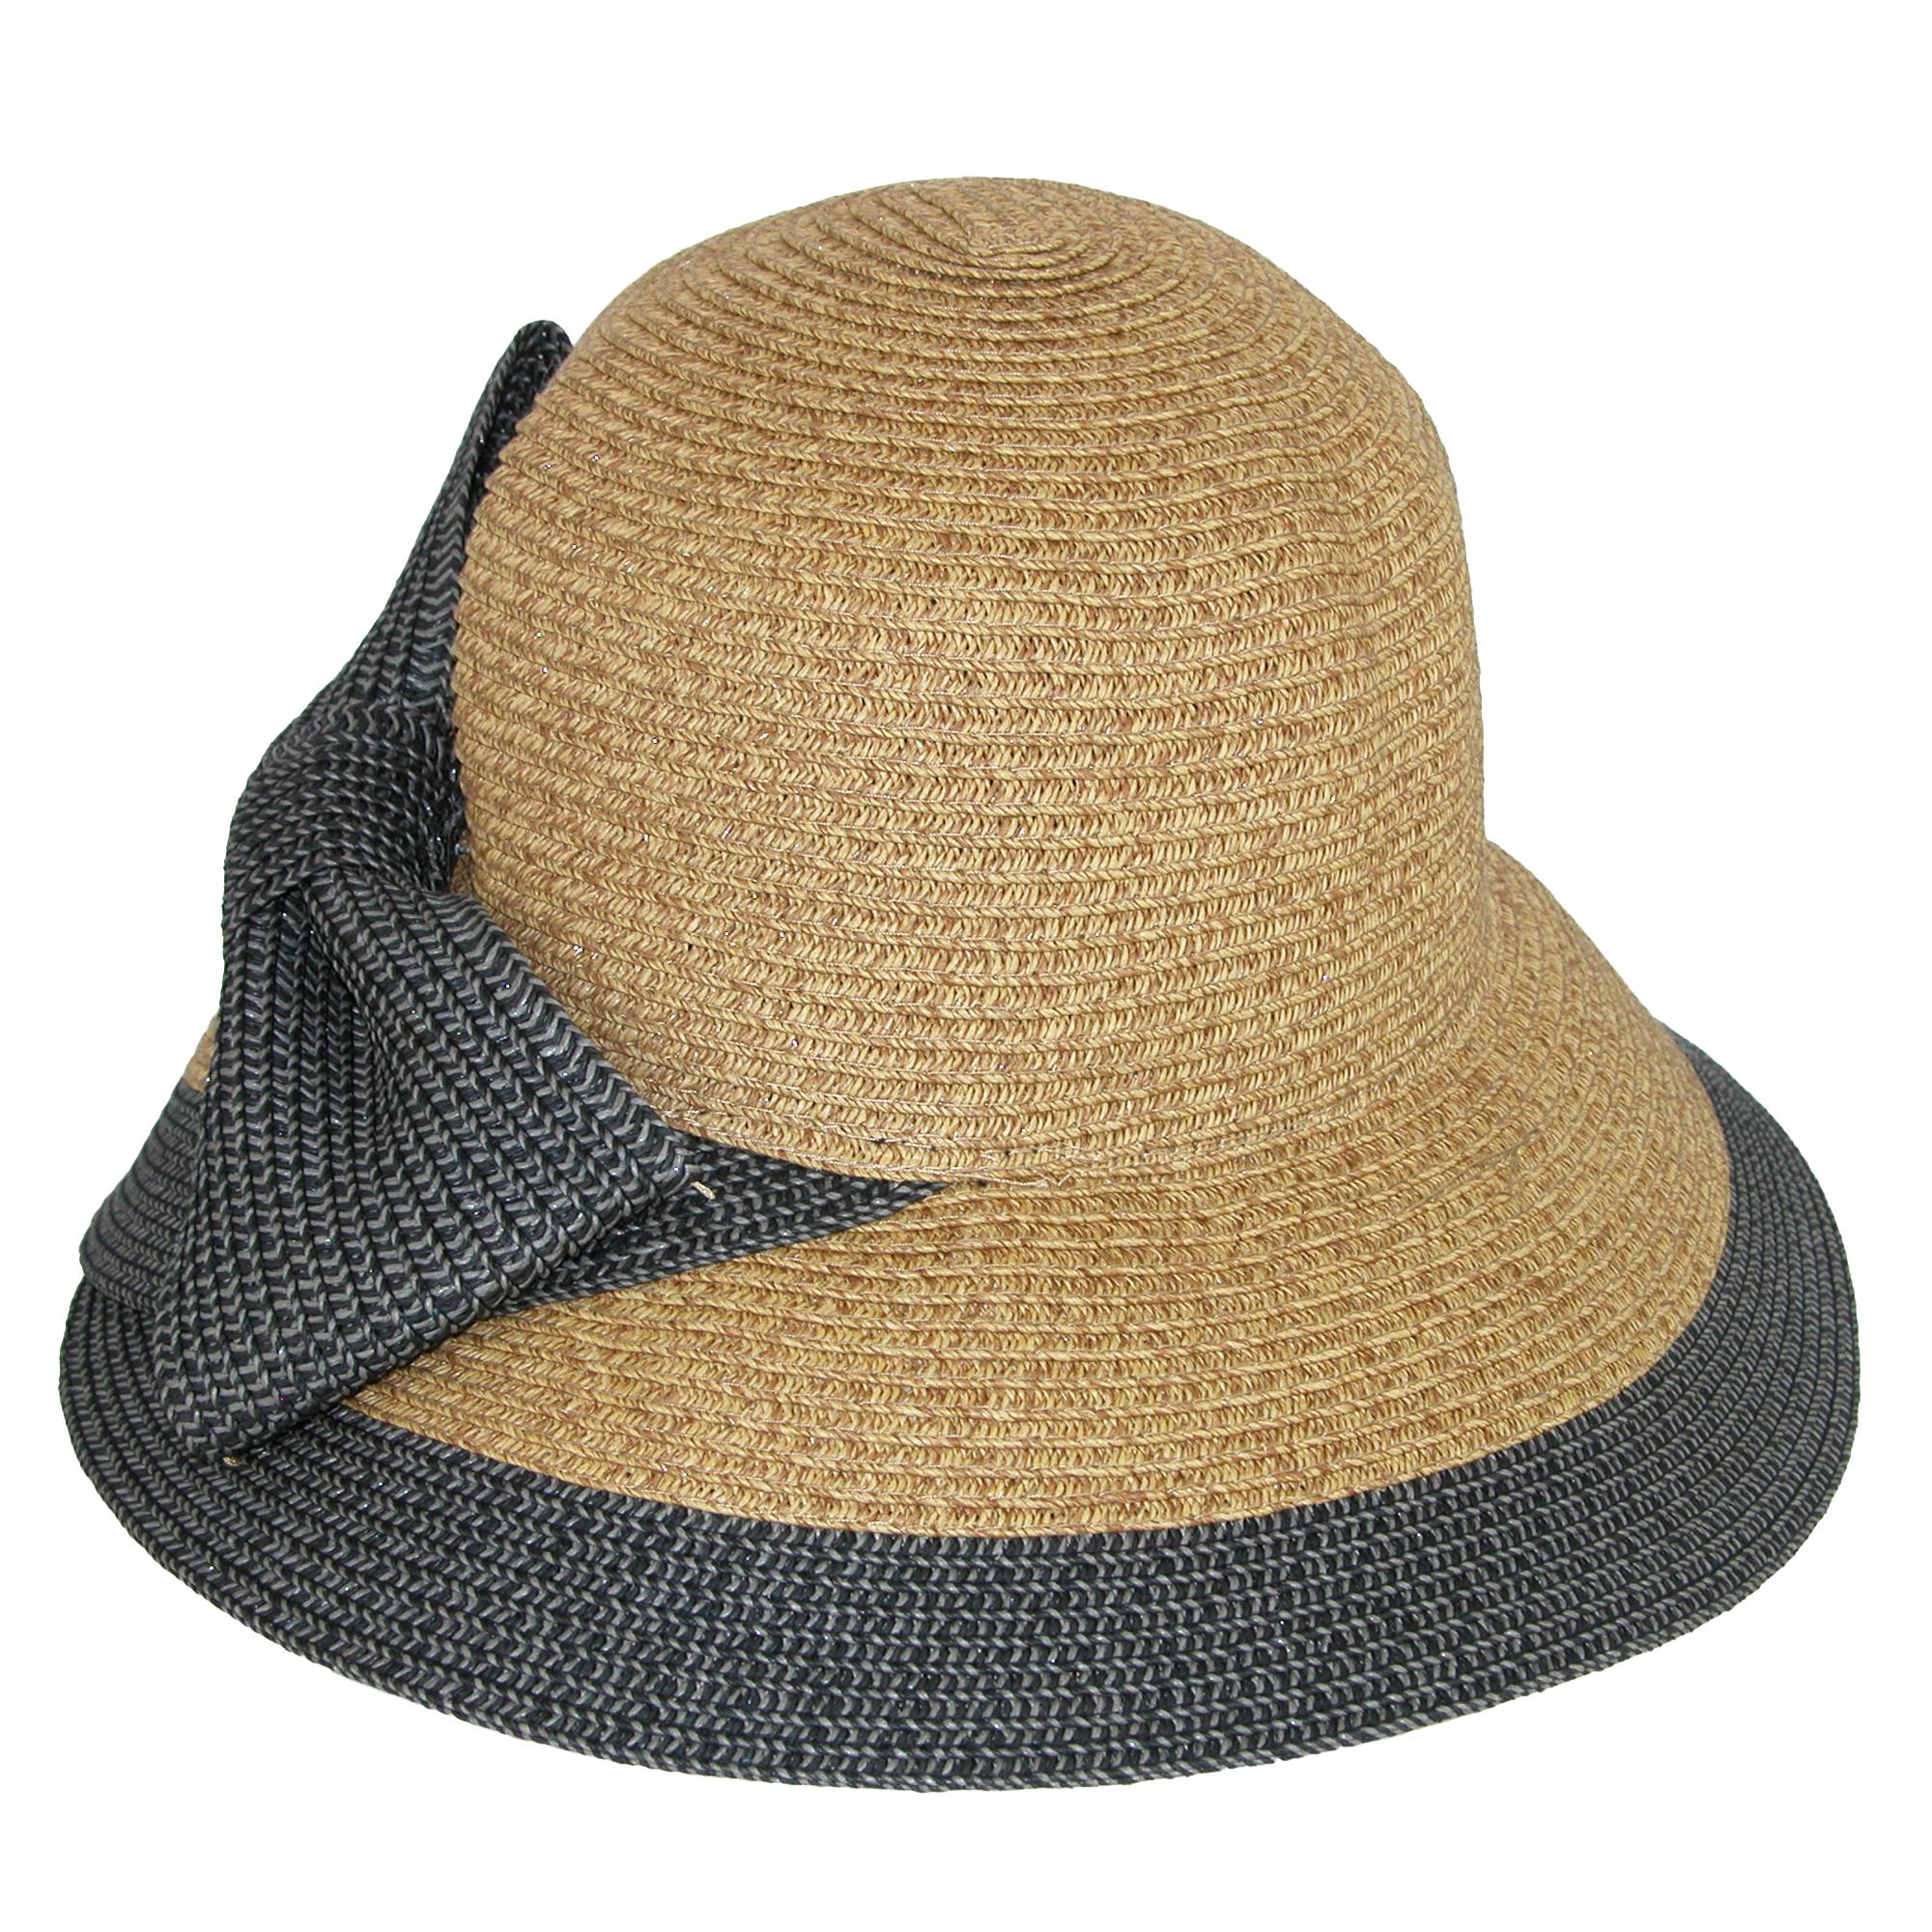 9f292ad87 Details about New Jeanne Simmons Women's Overlapping Split Brim Bucket Hat  with Bow at Back